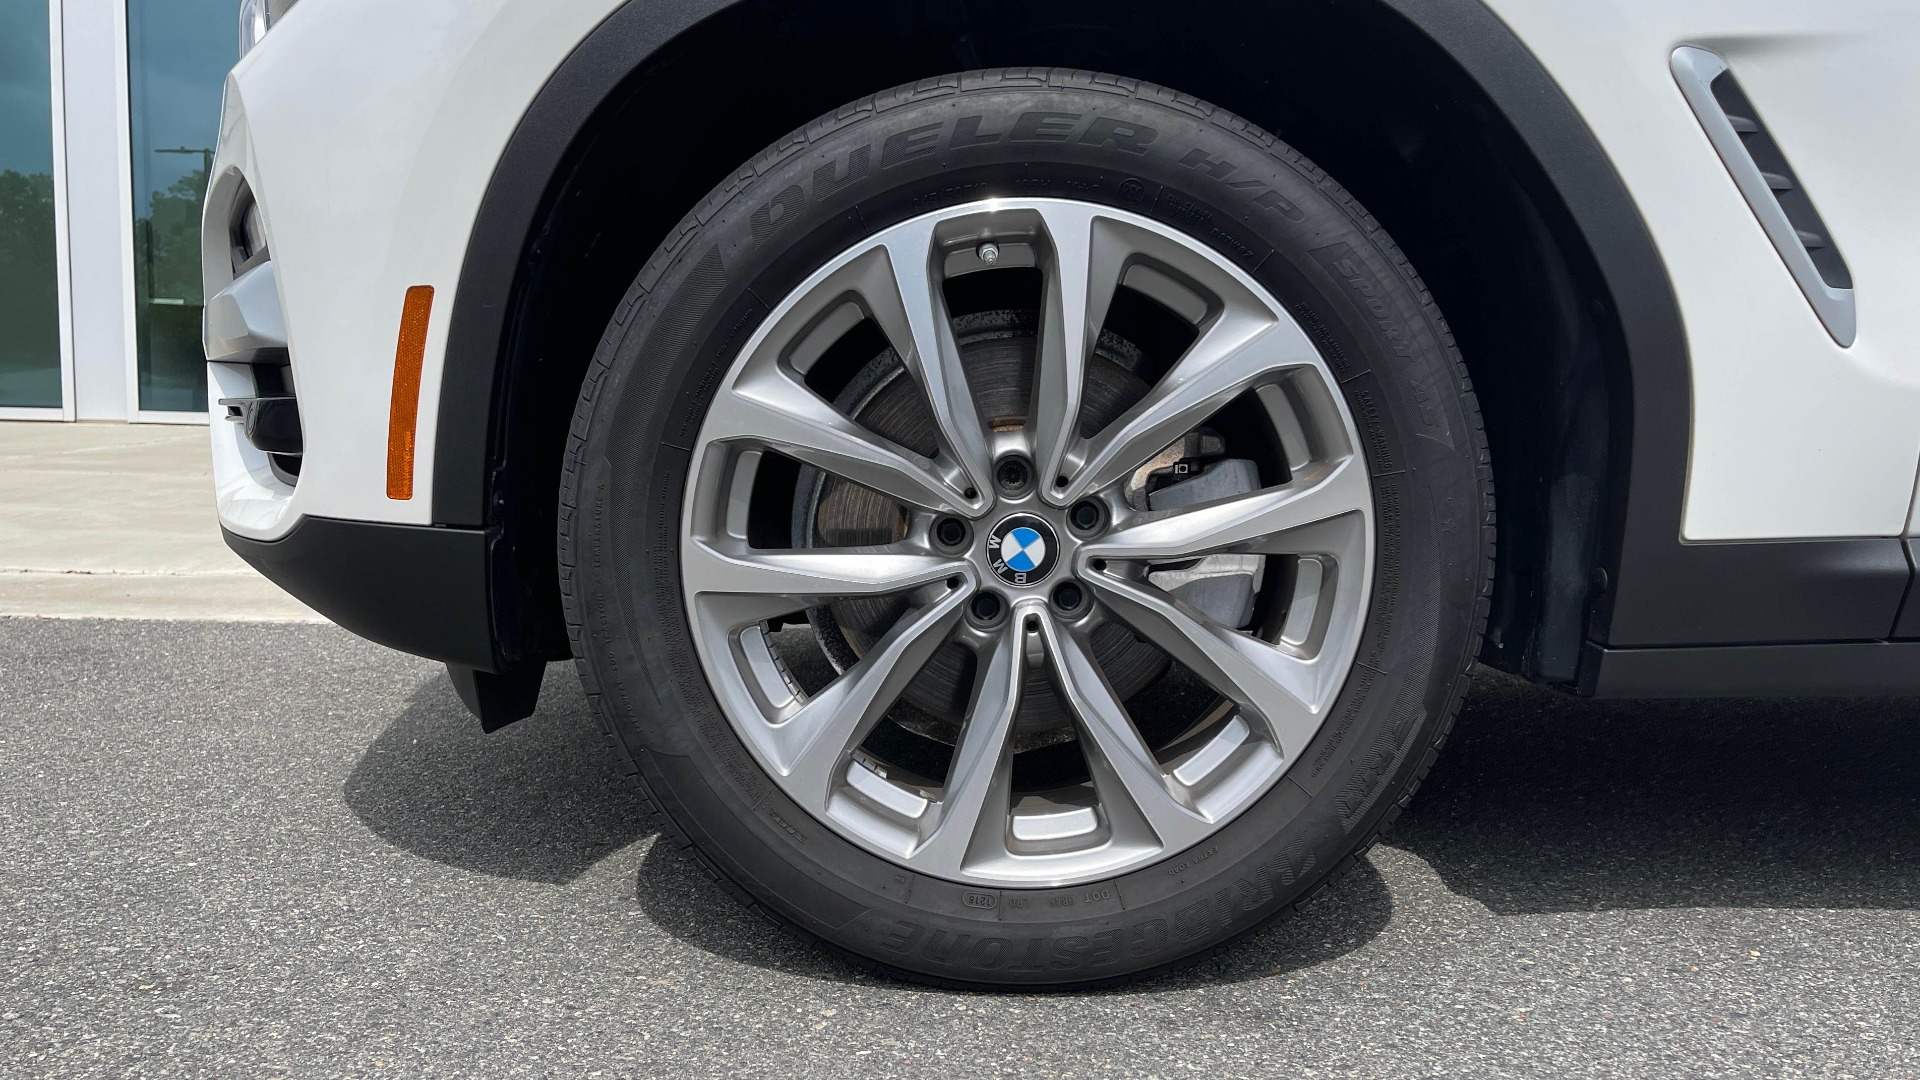 Used 2018 BMW X3 XDRIVE30I / NAV / PANO-ROOF / HTD STS / PARK DIST CNTRL / REARVIEW for sale $38,995 at Formula Imports in Charlotte NC 28227 64